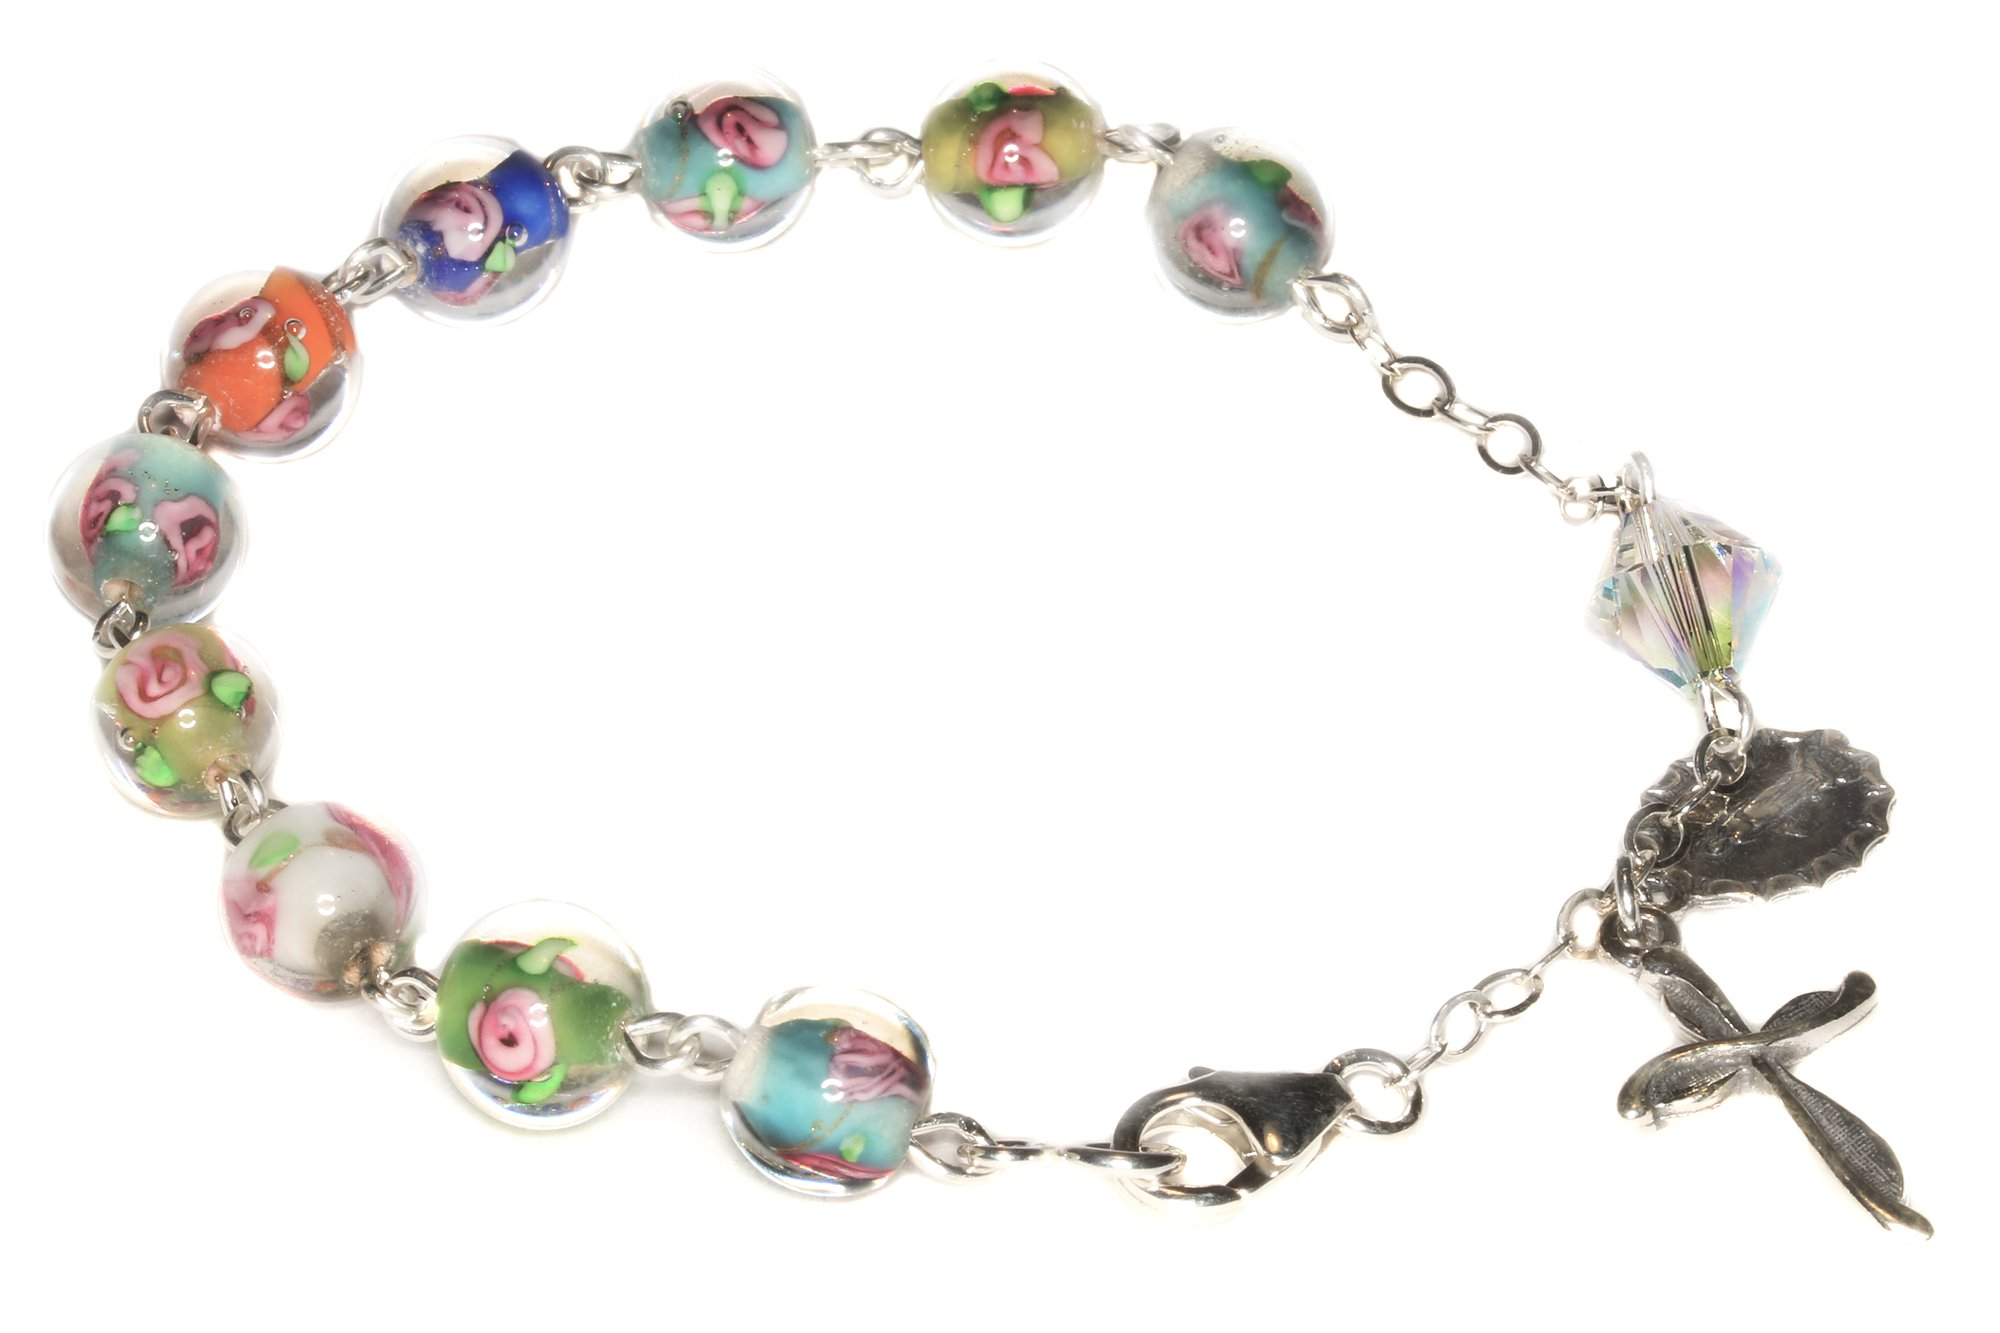 Womens Rosary Bracelet made with Multi-colored Floral Glass & Swarovski Crystal element